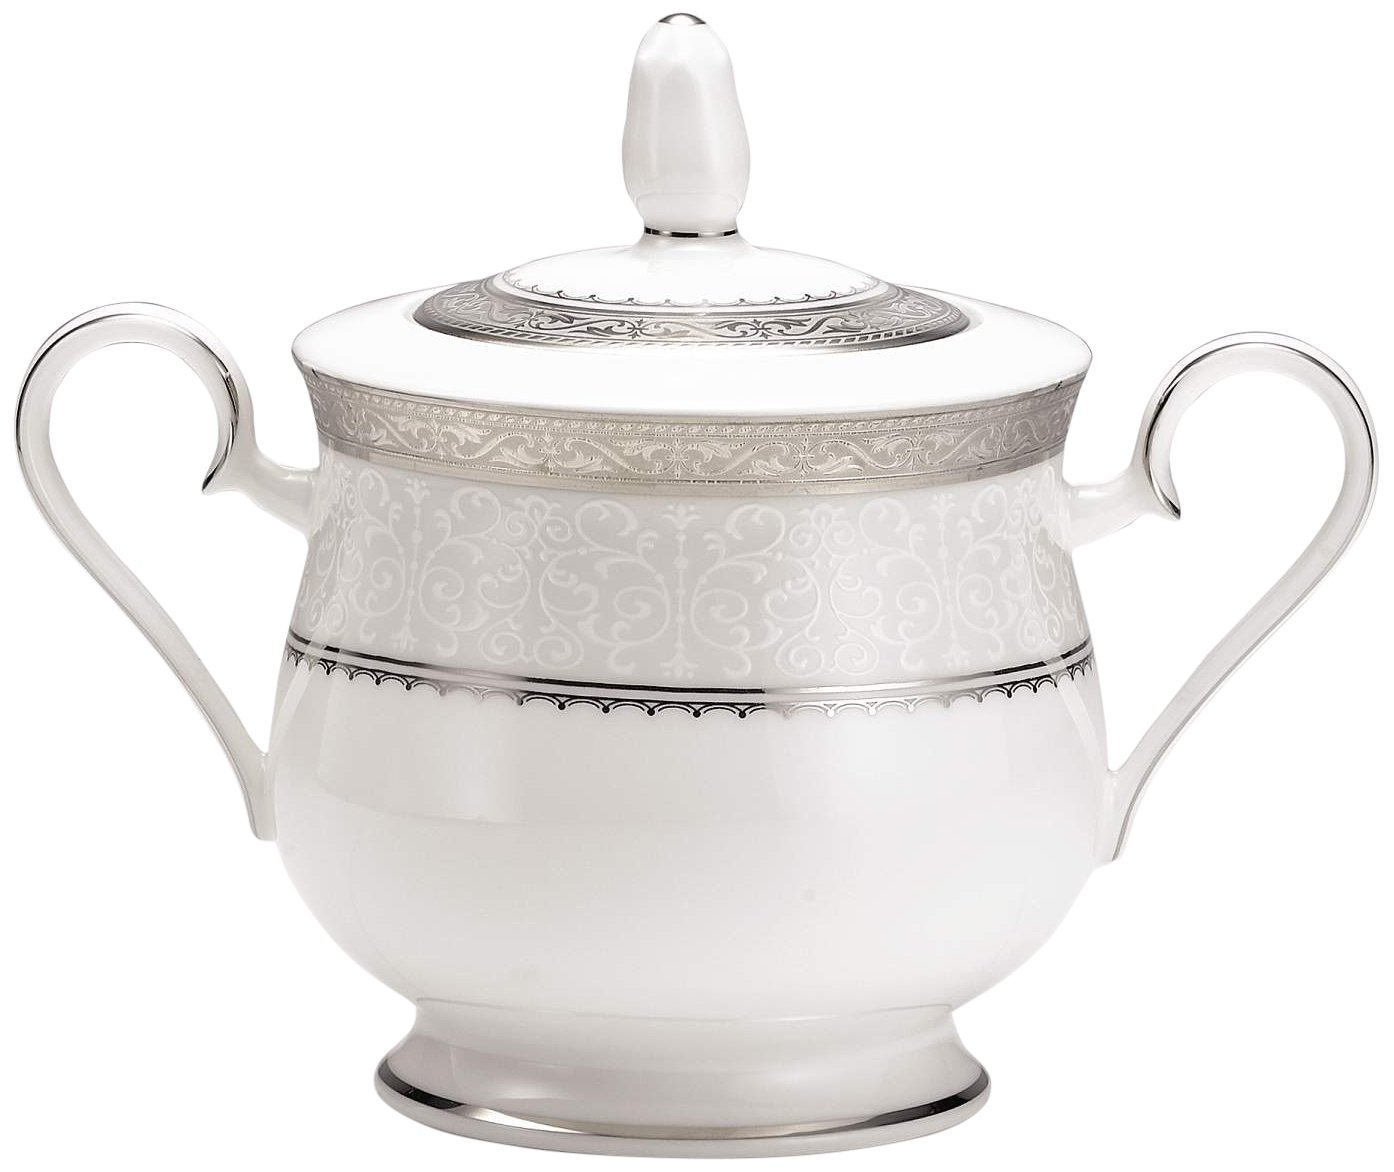 Noritake Odessa 11-1/2-Ounce Sugar Bowl with Cover, Platinum